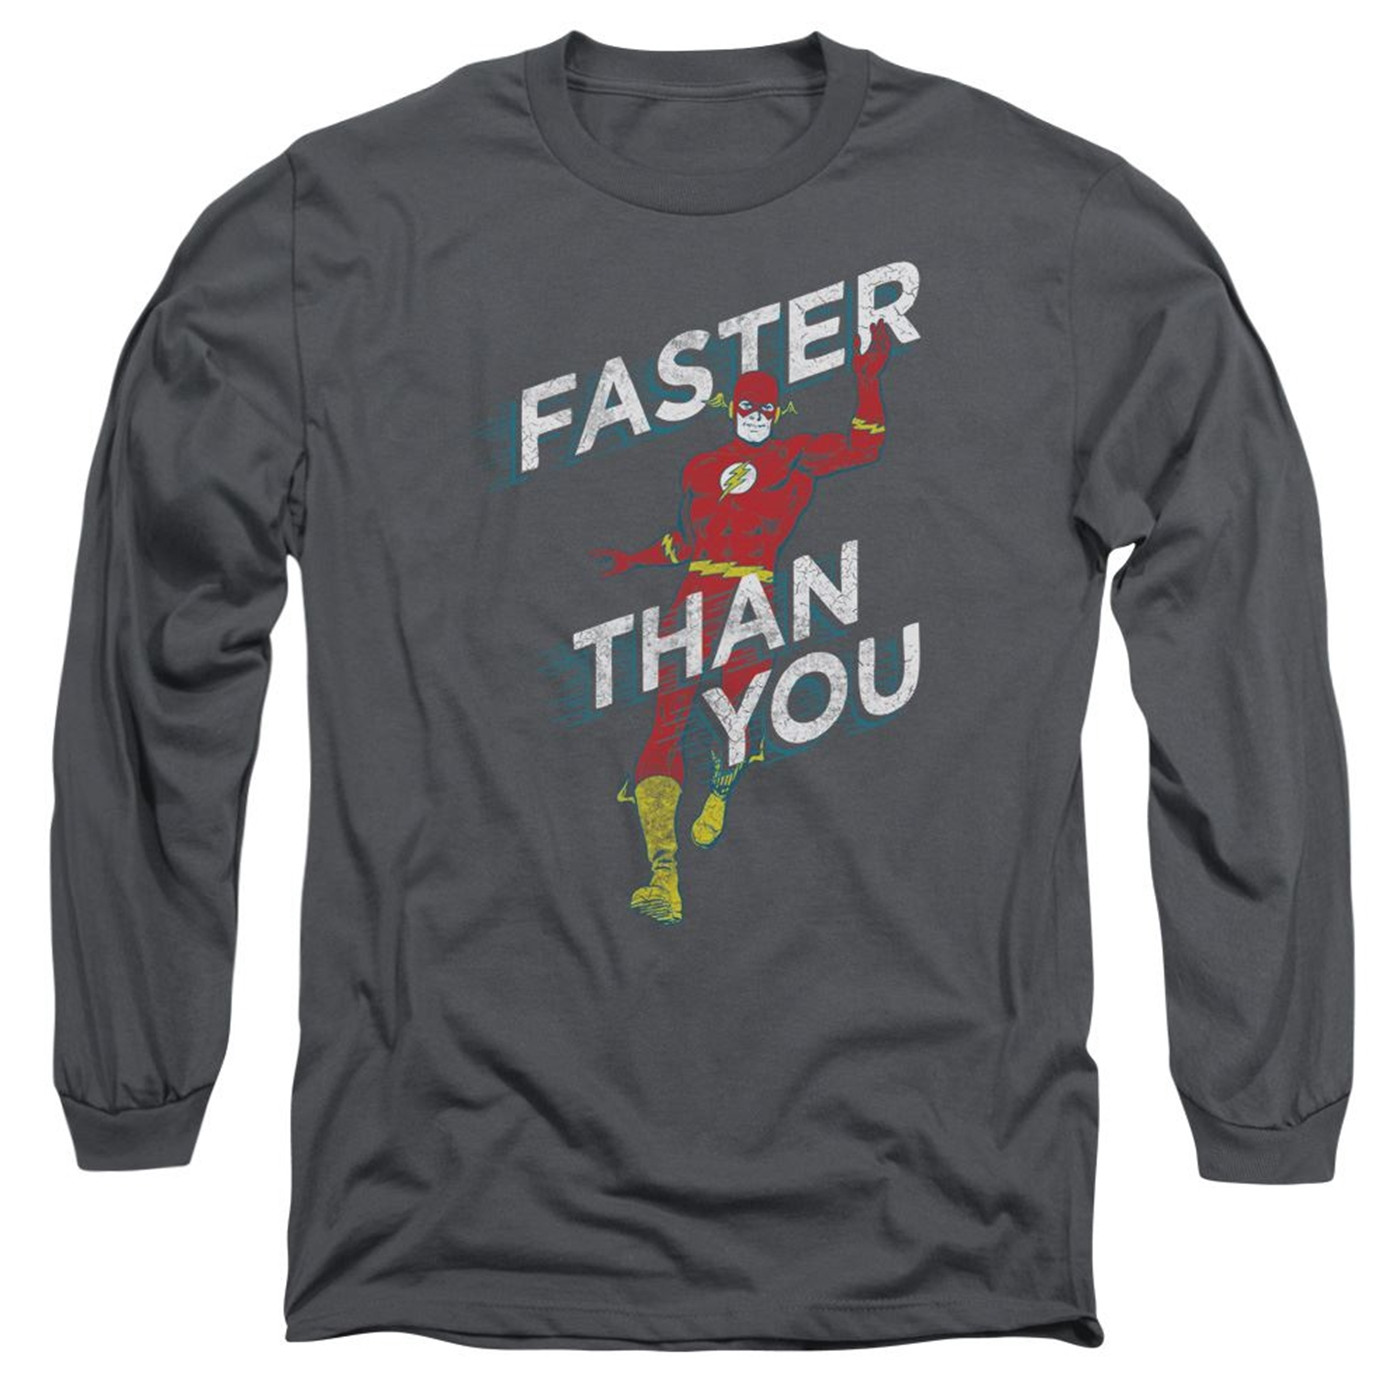 Faster Than You Flash Men's Long Sleeve